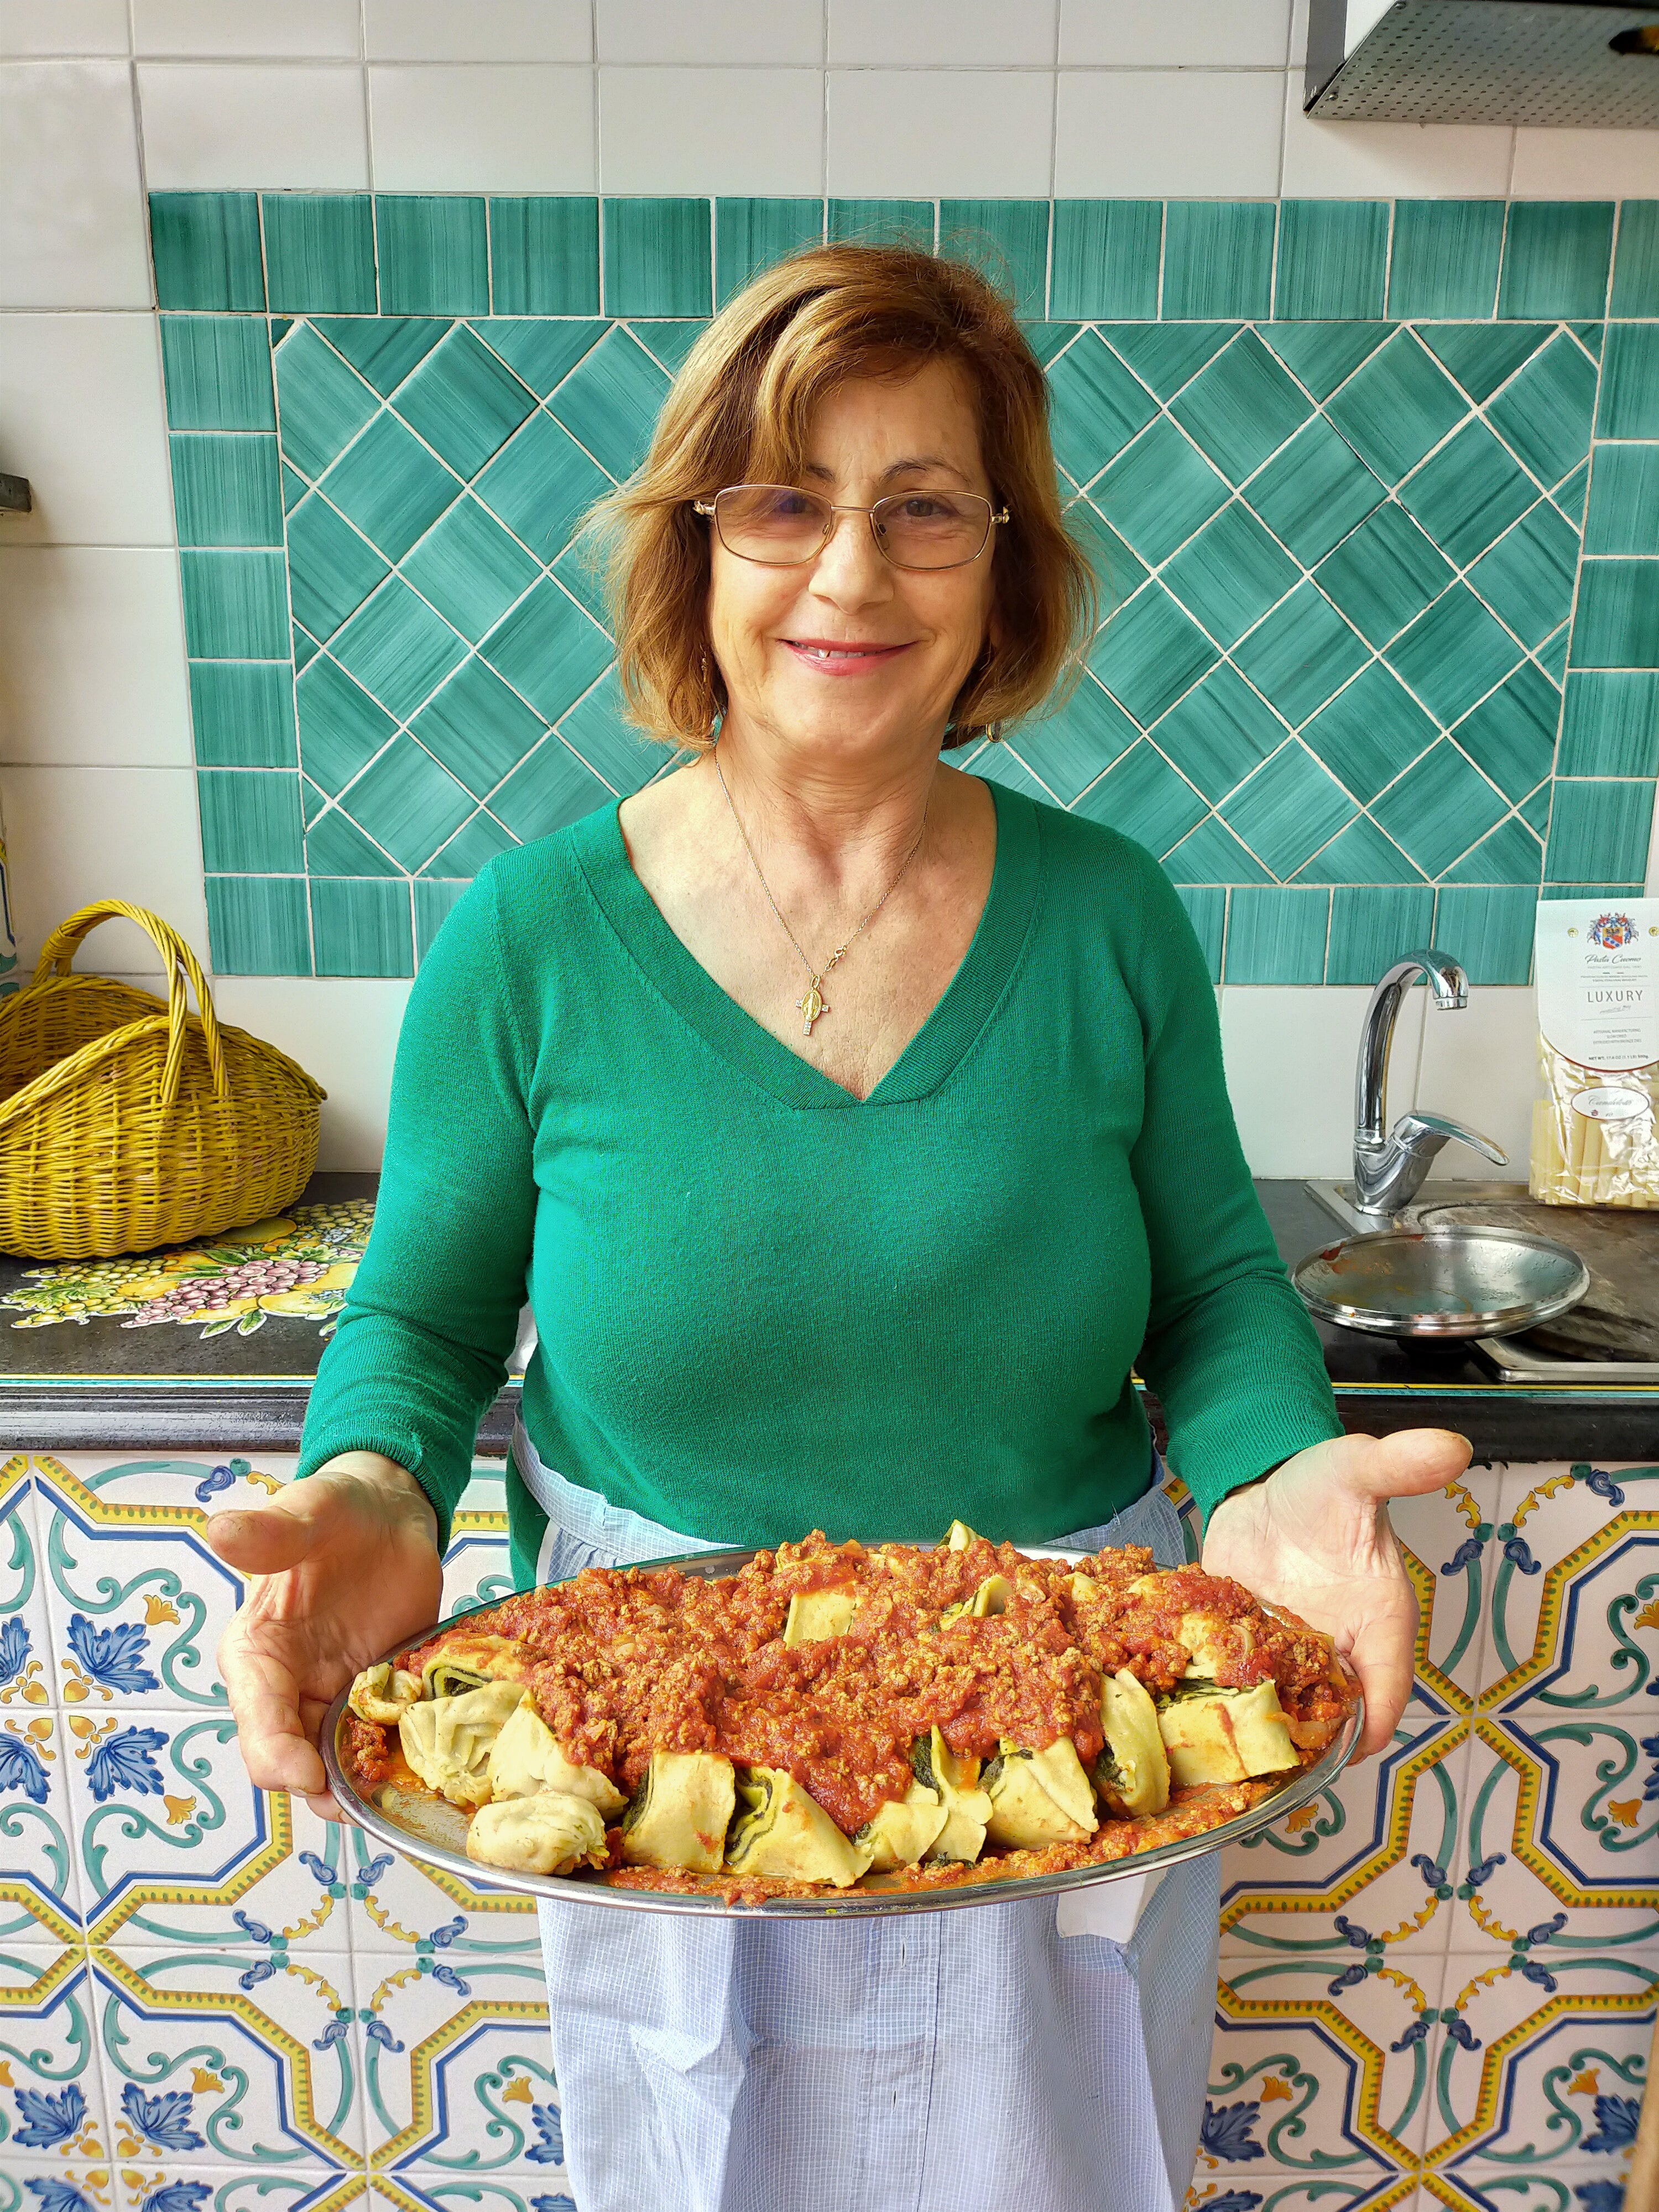 PRIVATE Virtual Cooking Experience with Nonna Giuseppina for AGEIST - MAY 9